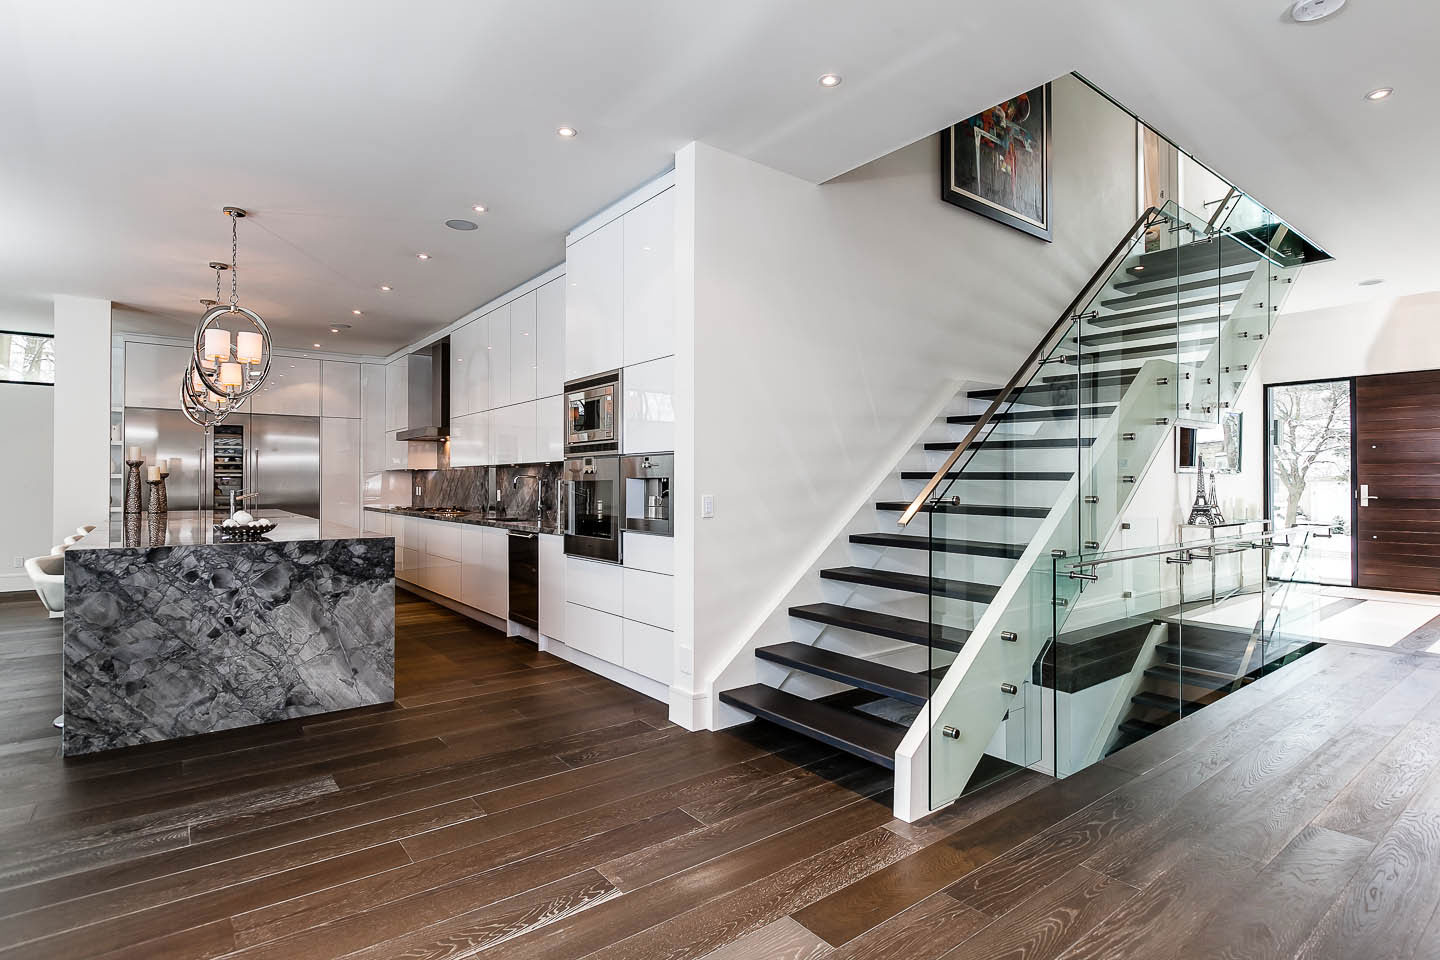 Modern Stairs, Glass, Wood and Metal Stairs, Kitchen, Entrance, Contemporary House in Toronto, Canada